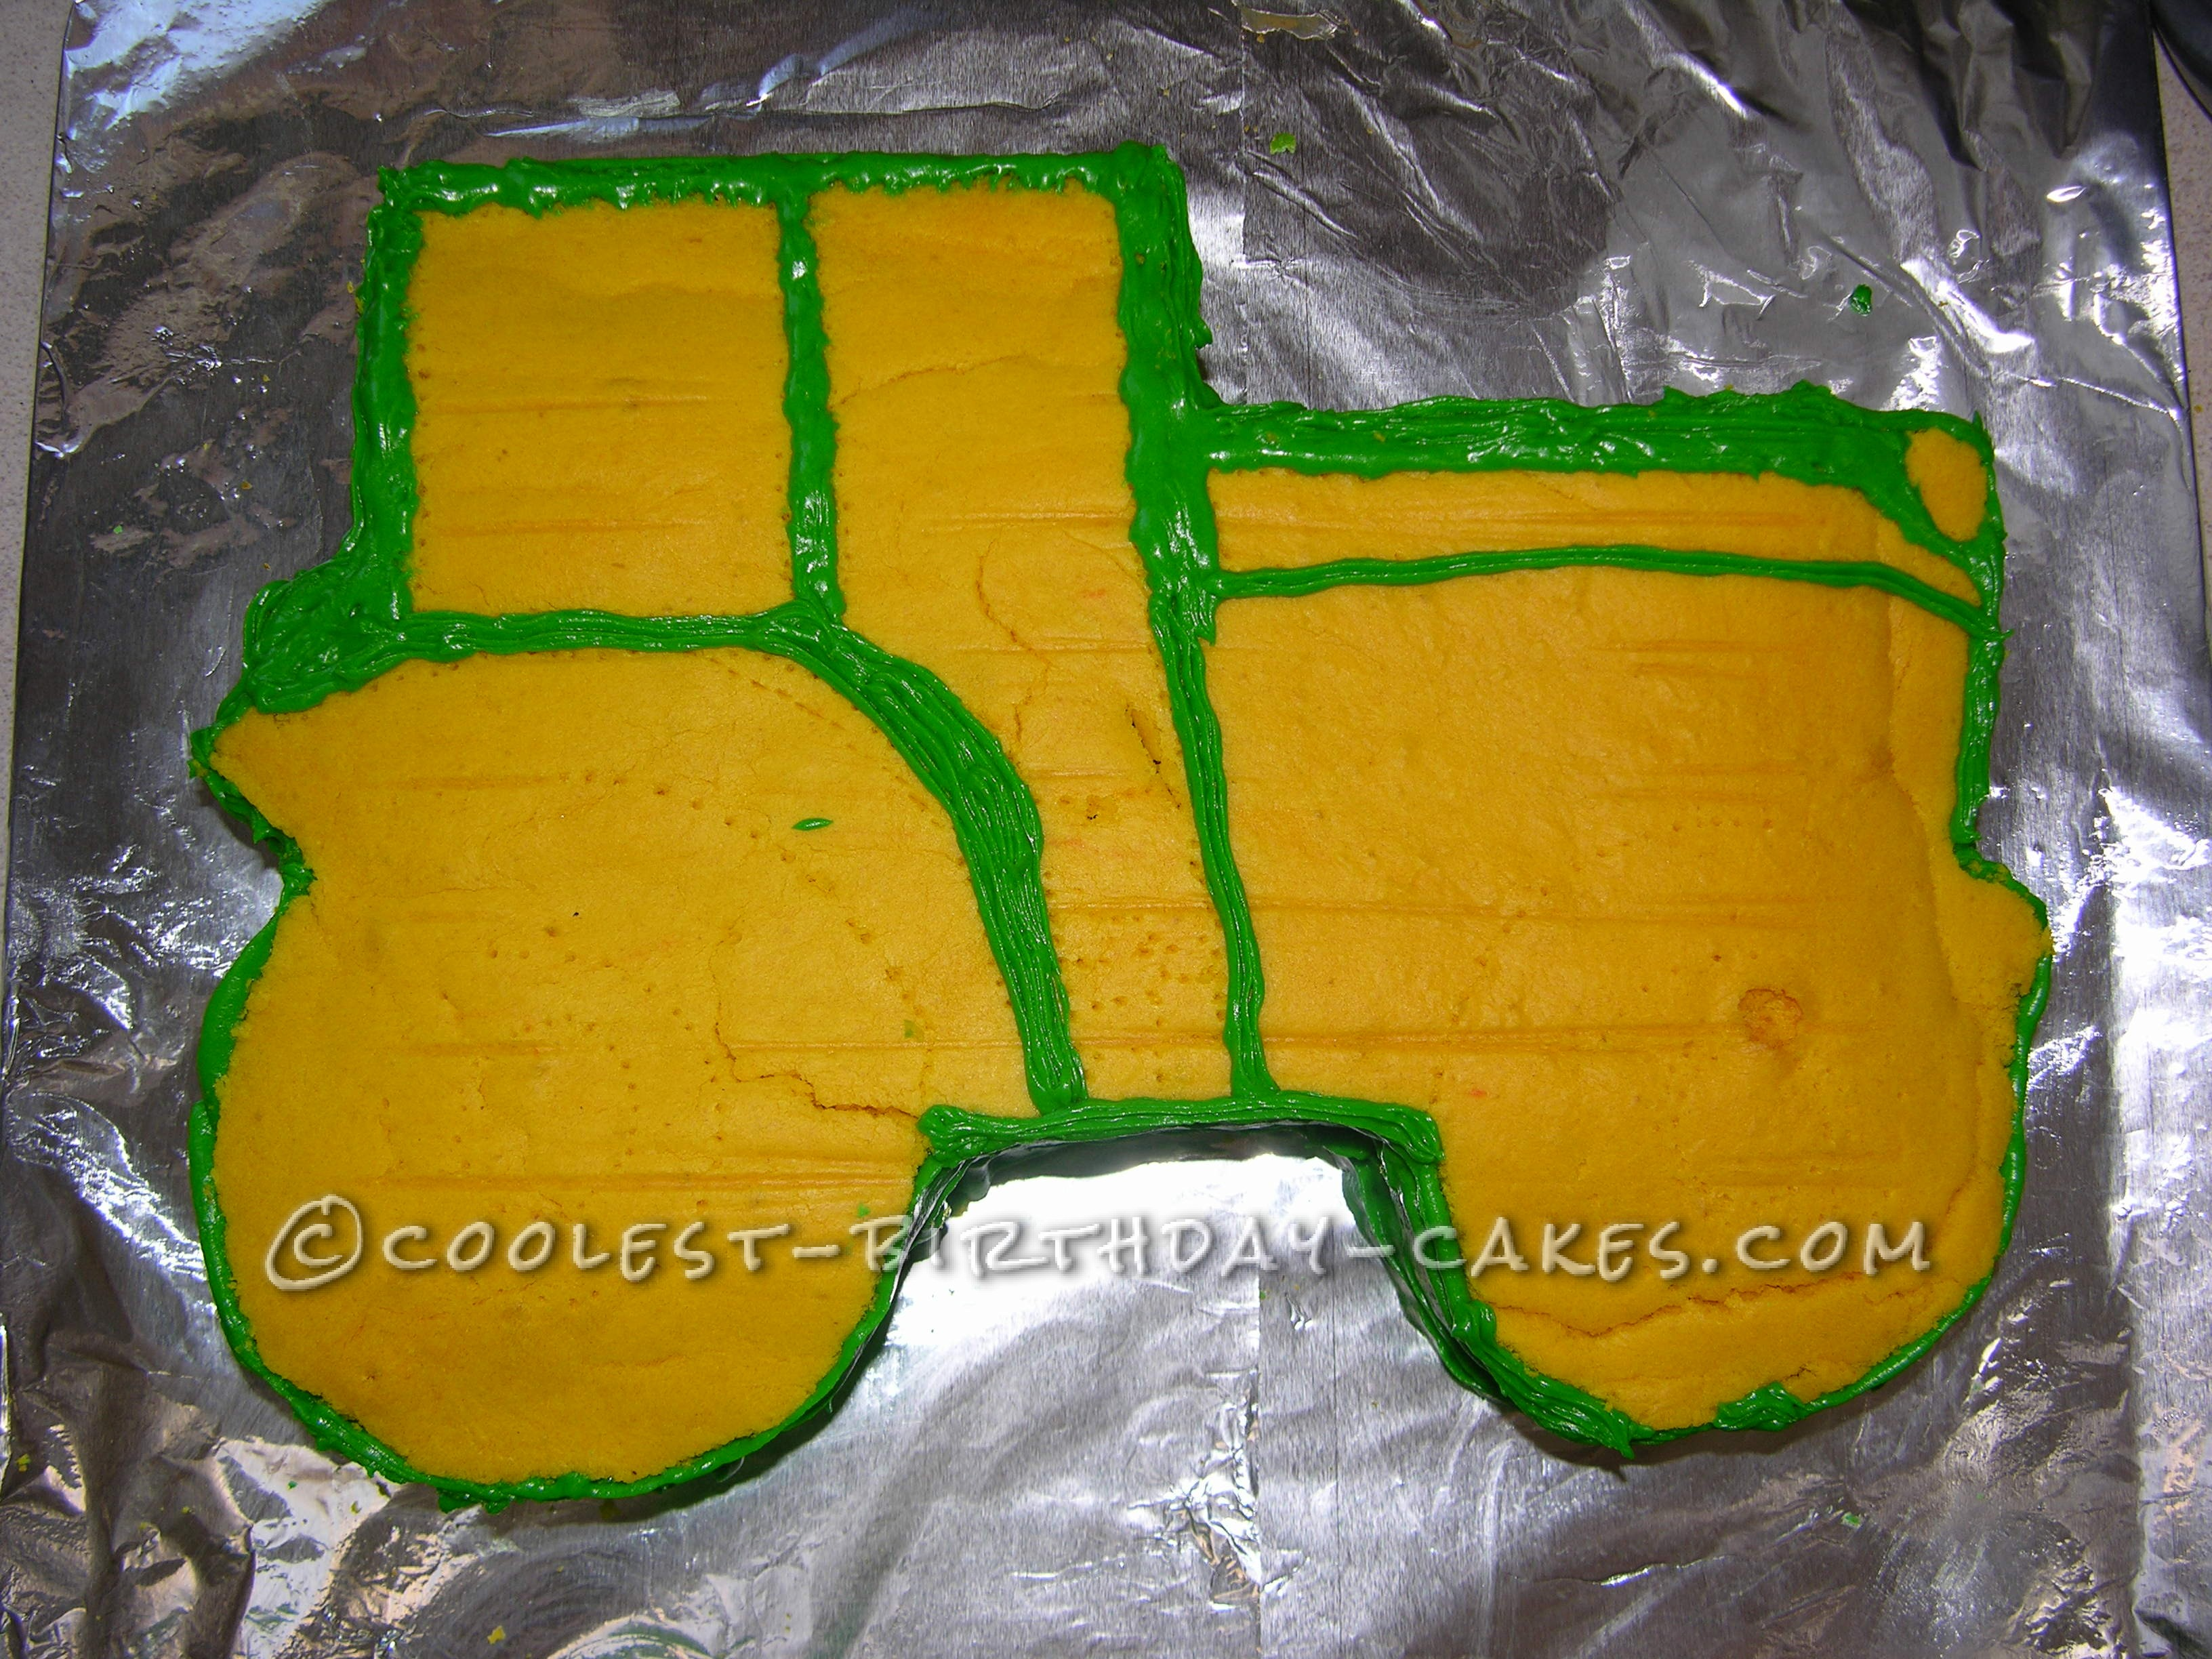 Freestyle Tractor Birthday Cake